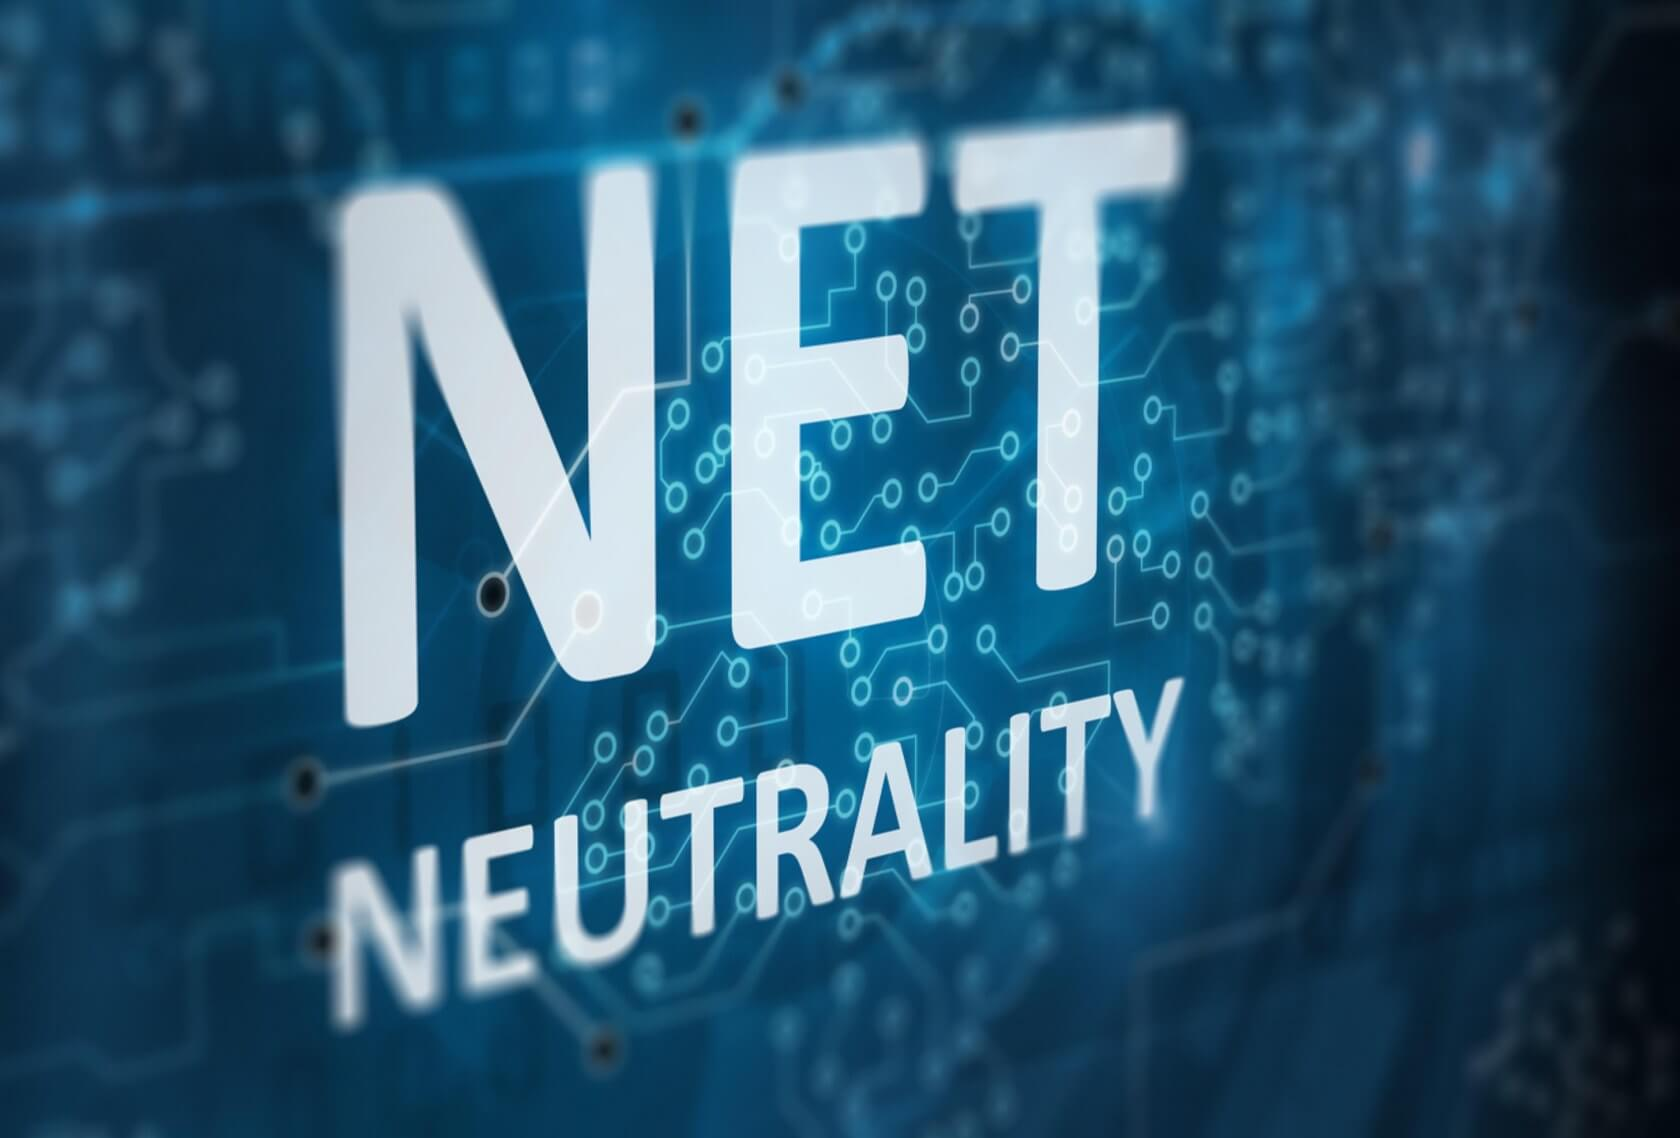 Democrats introduce bill to restore net neutrality